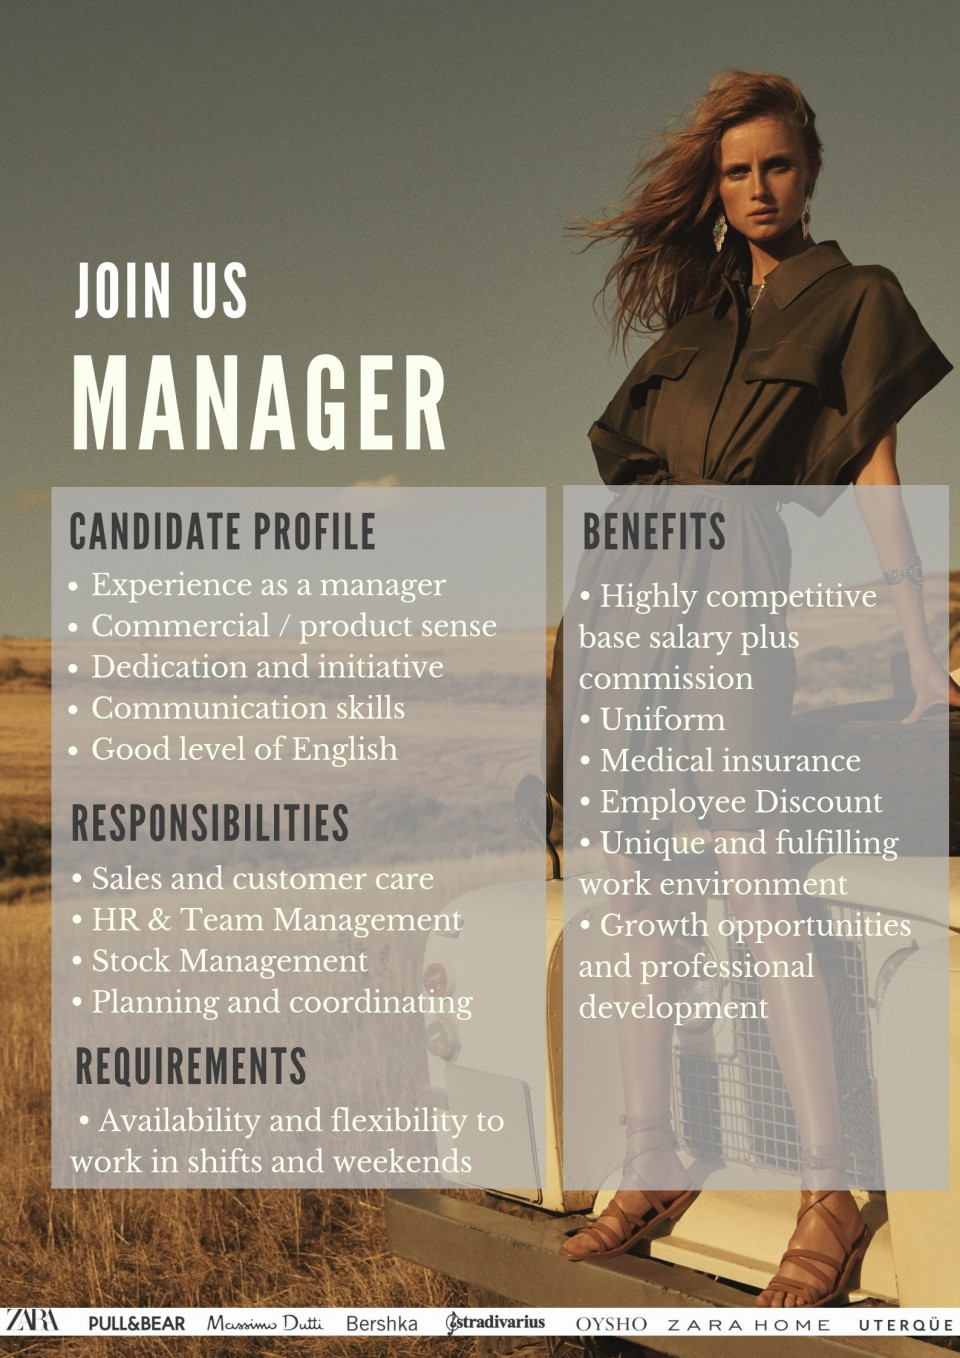 Join our team as a: - MANAGER- Zara, Pull&Bear, Massimi Dutti, Bershka, Stradivarius, Oysho, Zara Home, Uterque  At Inditex we believe that our greatest assets are the people working in our stores. If you are looking for a career in retail, you like to work close to the people and you are looking for new challenges, Inditex is the place for you!  Main responsibilities: Stock Management Sales Customer Service HR & Team Management Planning and coordinating  Candidate profile: Experience as a manager Commercial / product sense Dedication and initiative Communication skills Good level of English   Your chances to be selected will be greater if you apply also on our corporate website: www.inditexcareers.com Join our team as a: - MANAGER- Zara, Pull&Bear, Massimi Dutti, Bershka, Stradivarius, Oysho, Zara Home, Uterque  At Inditex we believe that our greatest assets are the people working in our stores. If you are looking for a career in retail, you like to work close to the people and you are looking for new challenges, Inditex is the place for you!  Main responsibilities: Stock Management Sales Customer Service HR & Team Management Planning and coordinating  Candidate profile: Experience as a manager Commercial / product sense Dedication and initiative Communication skills Good level of English   Your chances to be selected will be greater if you apply also on our corporate website: www.inditexcareers.com; Join our team as a: - MANAGER- Zara, Pull&Bear, Massimi Dutti, Bershka, Stradivarius, Oysho, Zara Home, Uterque  At Inditex we believe that our greatest assets are the people working in our stores. If you are looking for a career in retail, you like to work close to the people and you are looking for new challenges, Inditex is the place for you!  Main responsibilities: Stock Management Sales Customer Service HR & Team Management Planning and coordinating  Candidate profile: Experience as a manager Commercial / product sense Dedication and initiative Communication skill